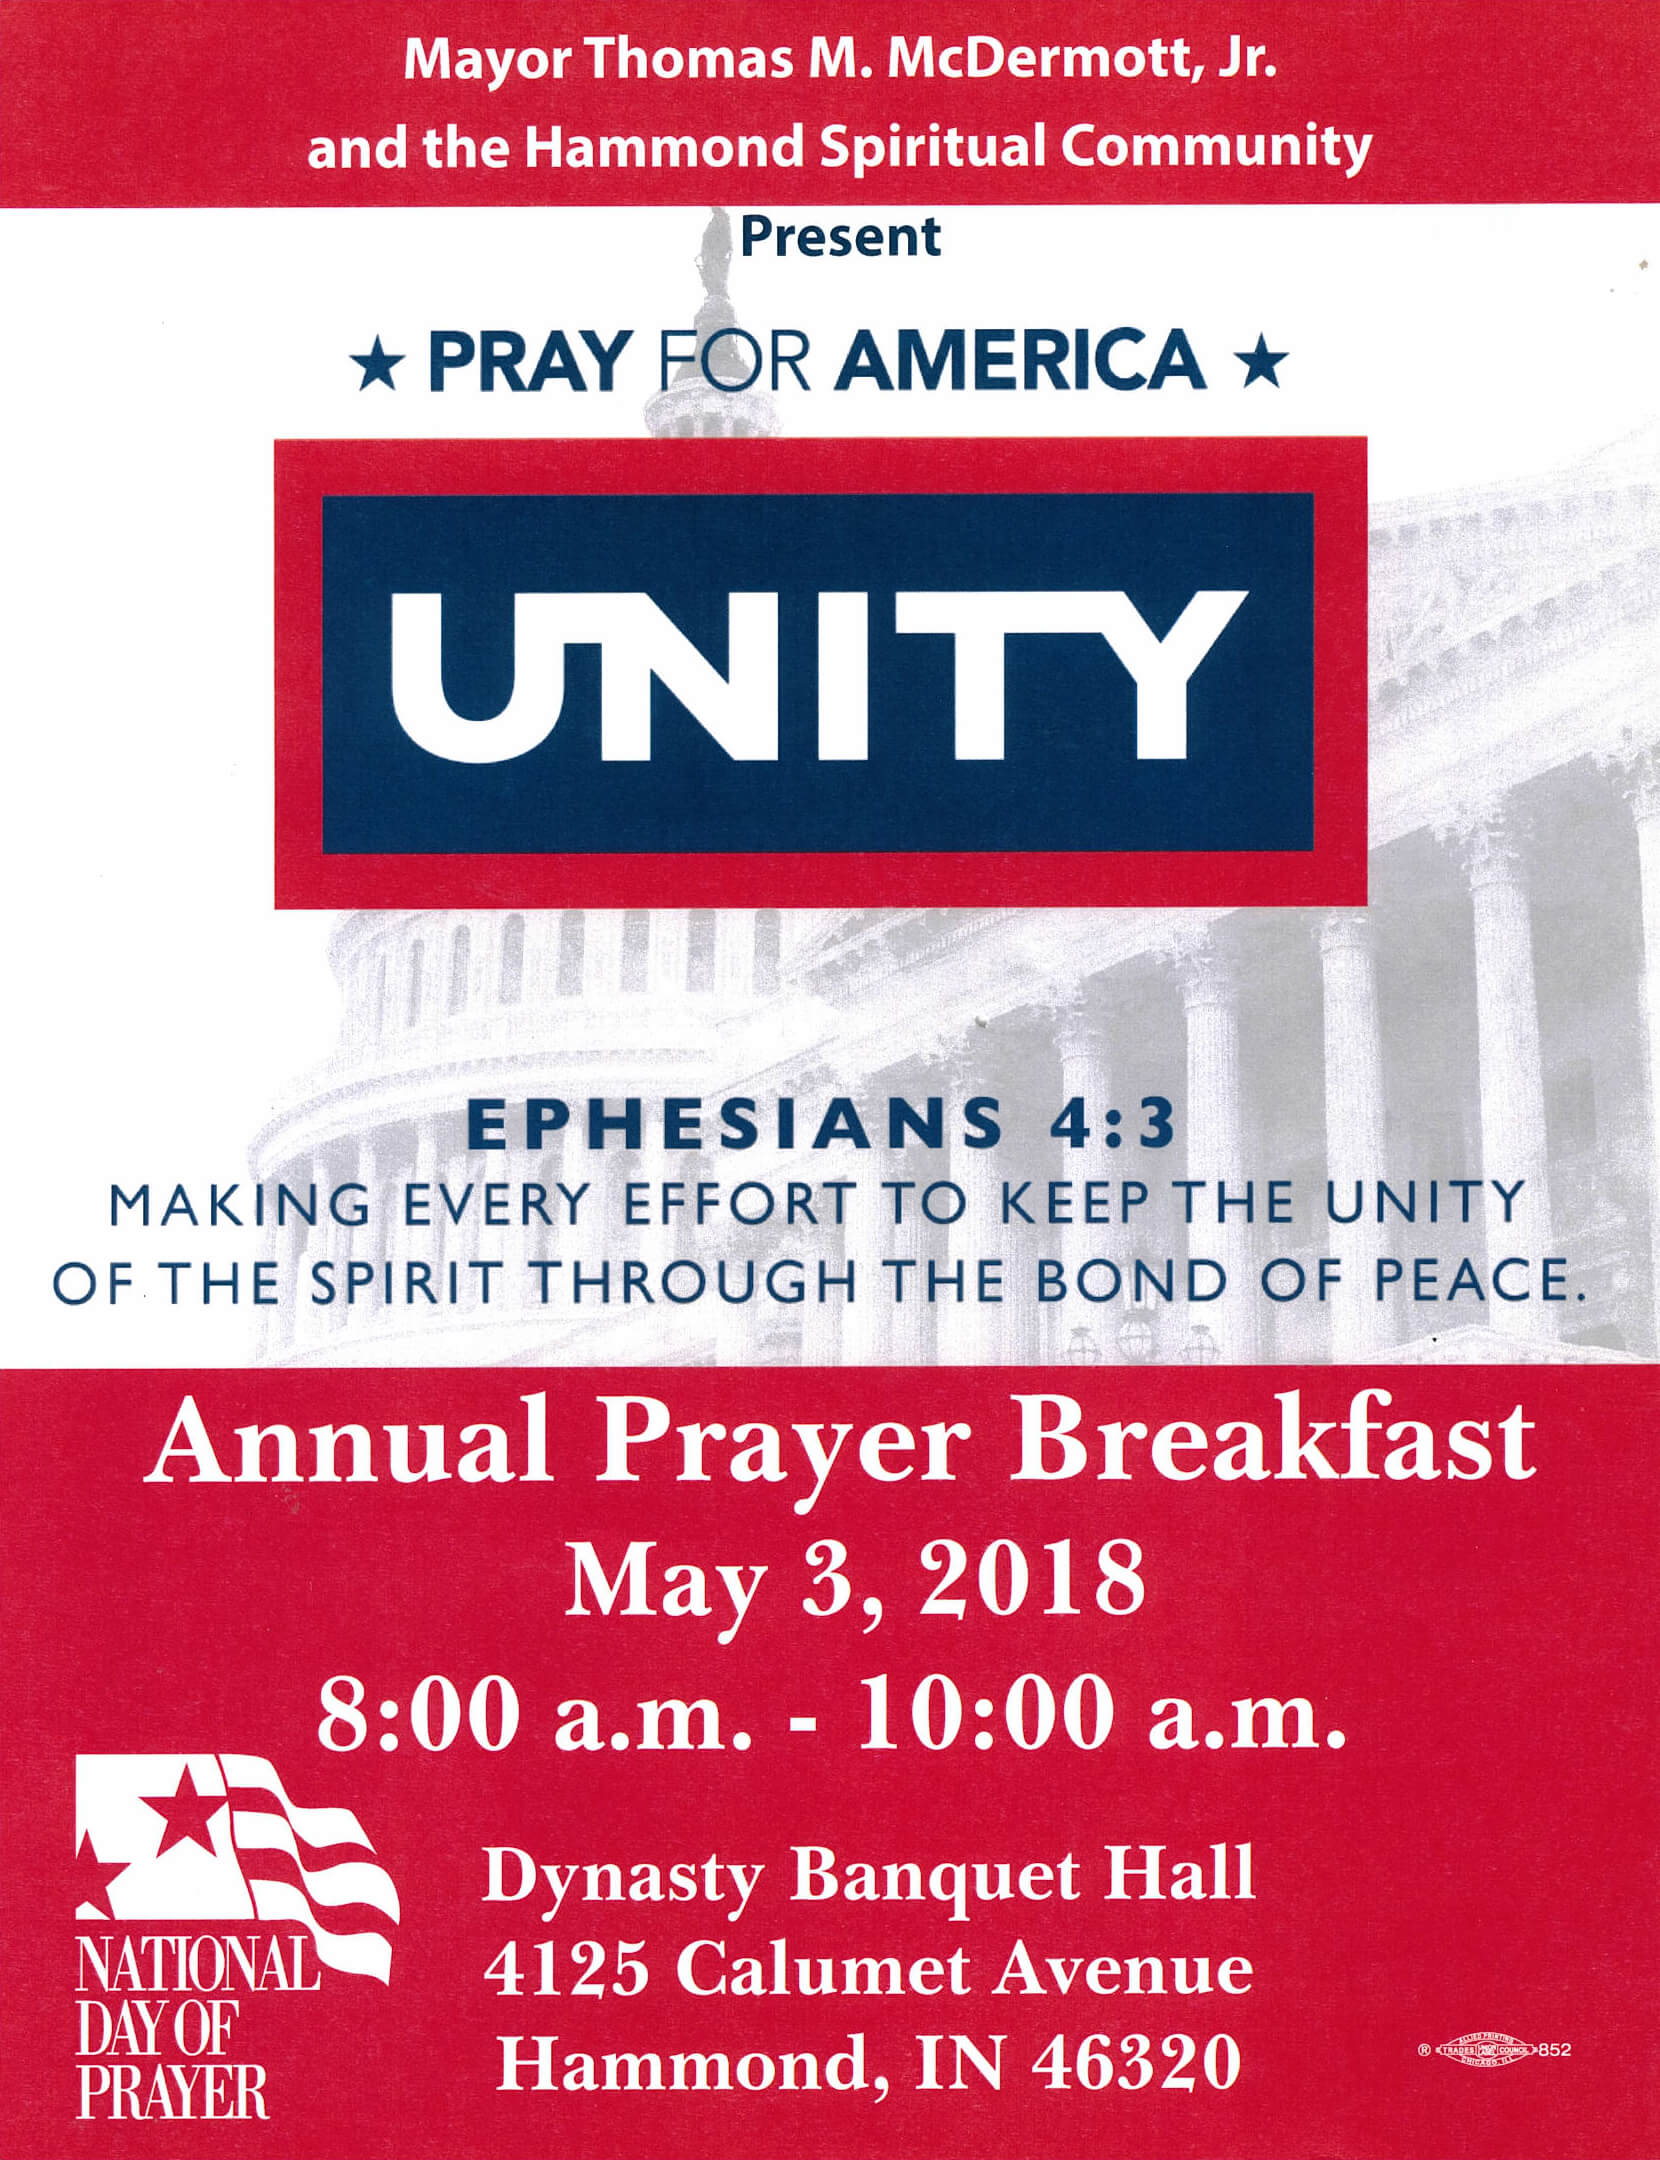 Mayor Thomas M. McDermott, Jr. and the Department of Community Development, will host the 2018 Annual National Day of Prayer.